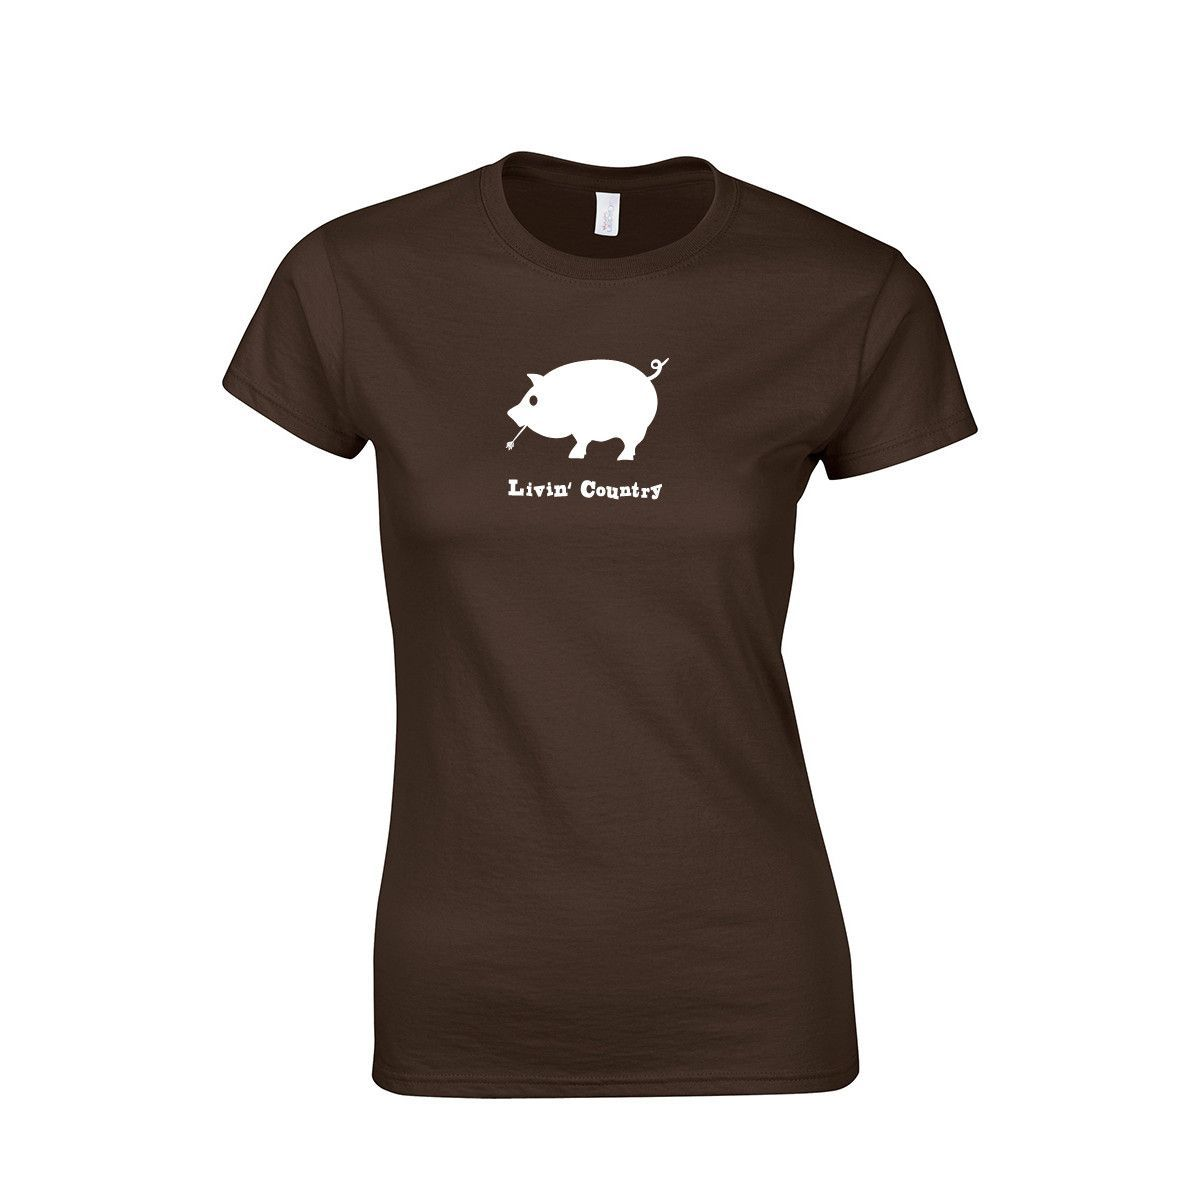 Ladies Jr. Fit Livin' Country Pig T-shirt